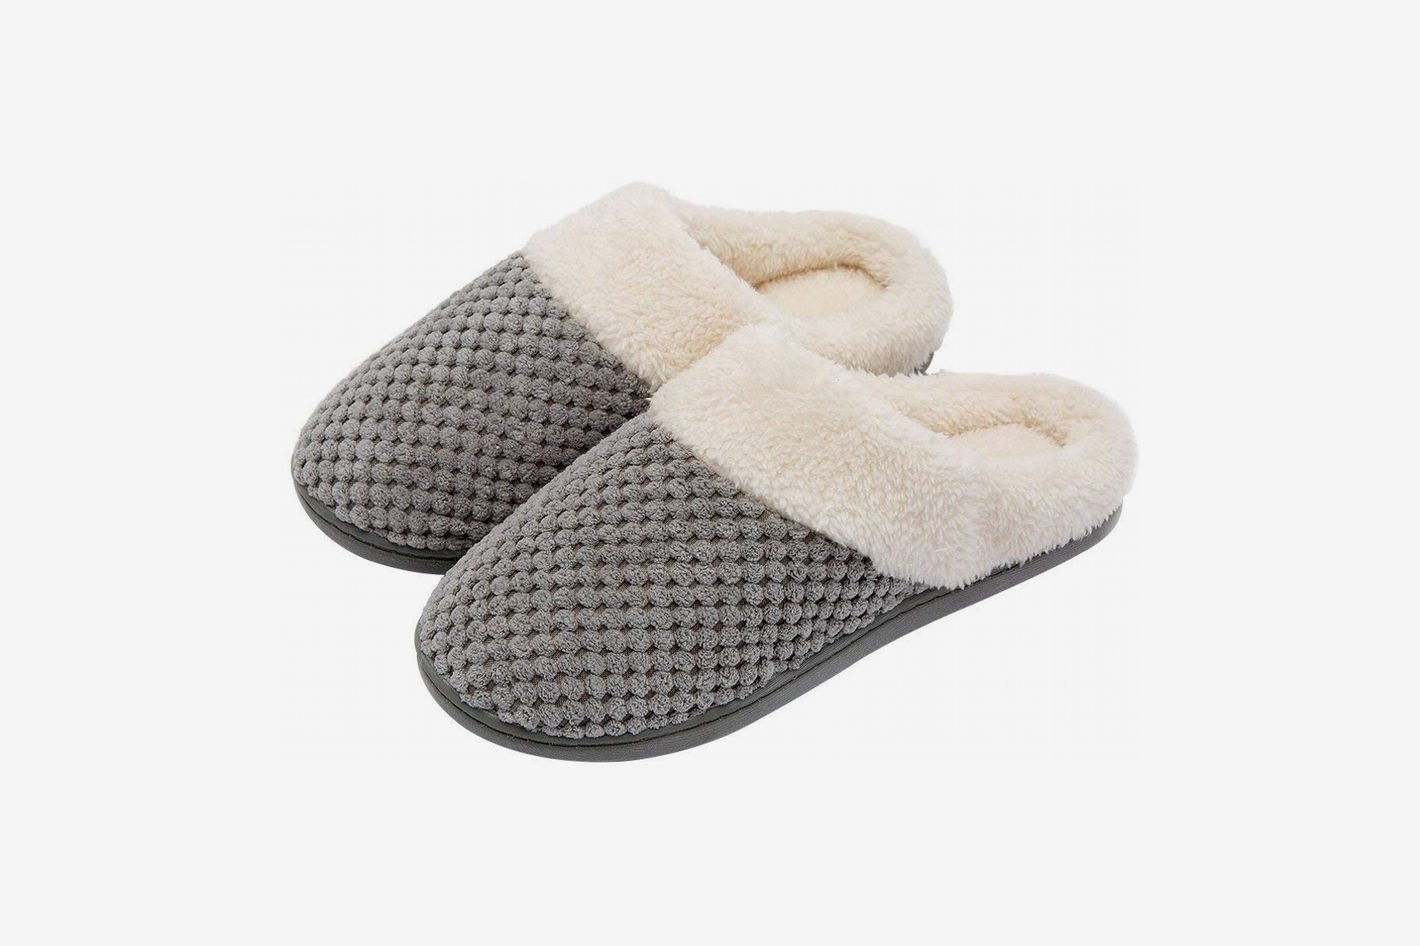 d8378f84da8 Women s Soft Slip-on Memory Foam Slippers